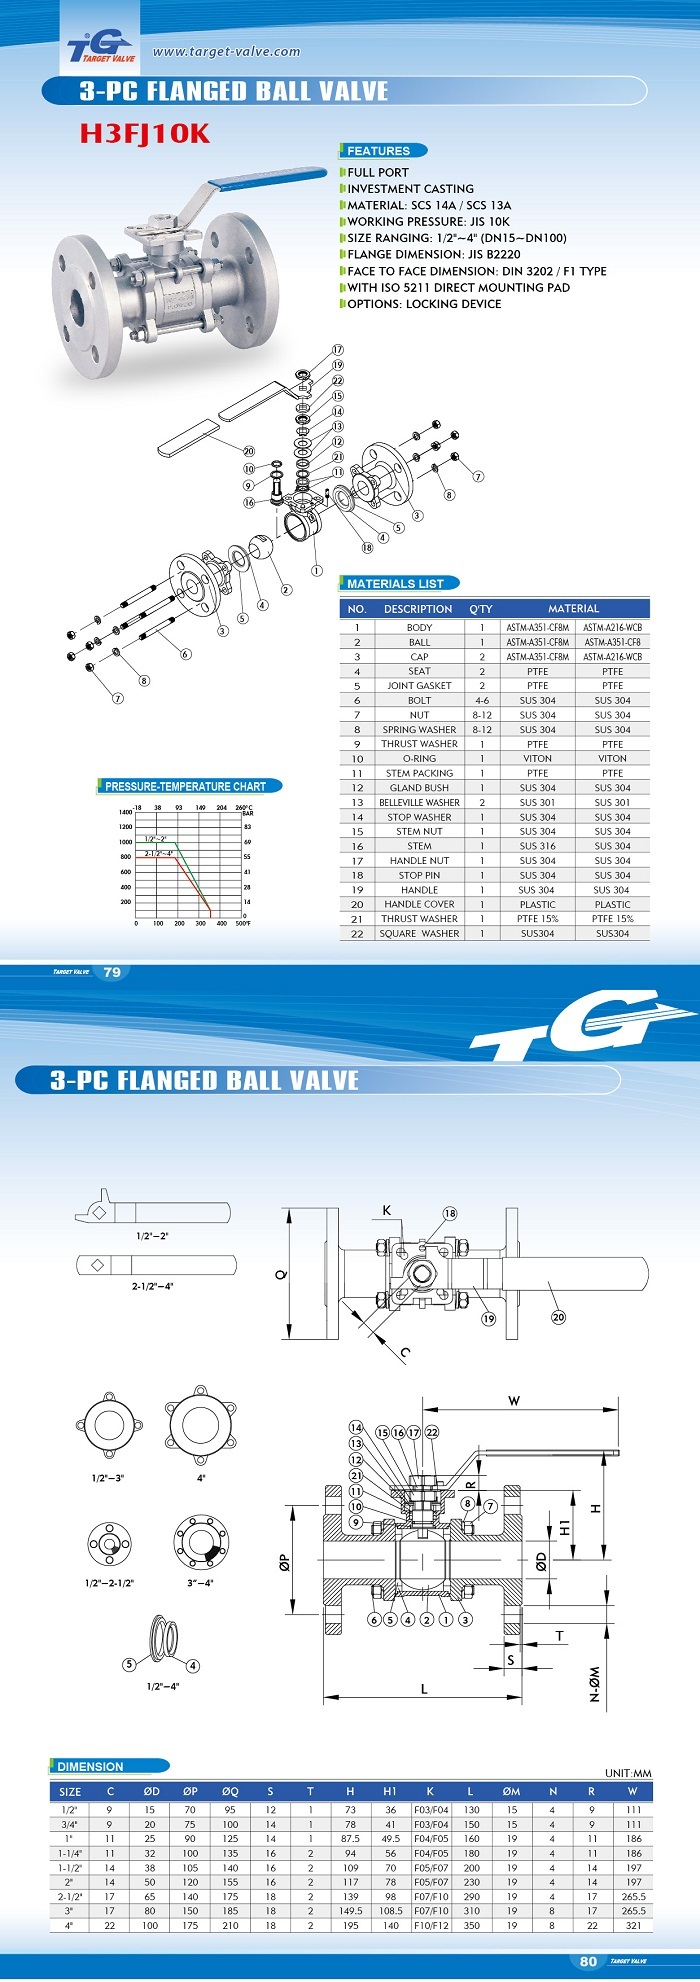 3 PC FLANGED BALL VALVE - H3FJ10K